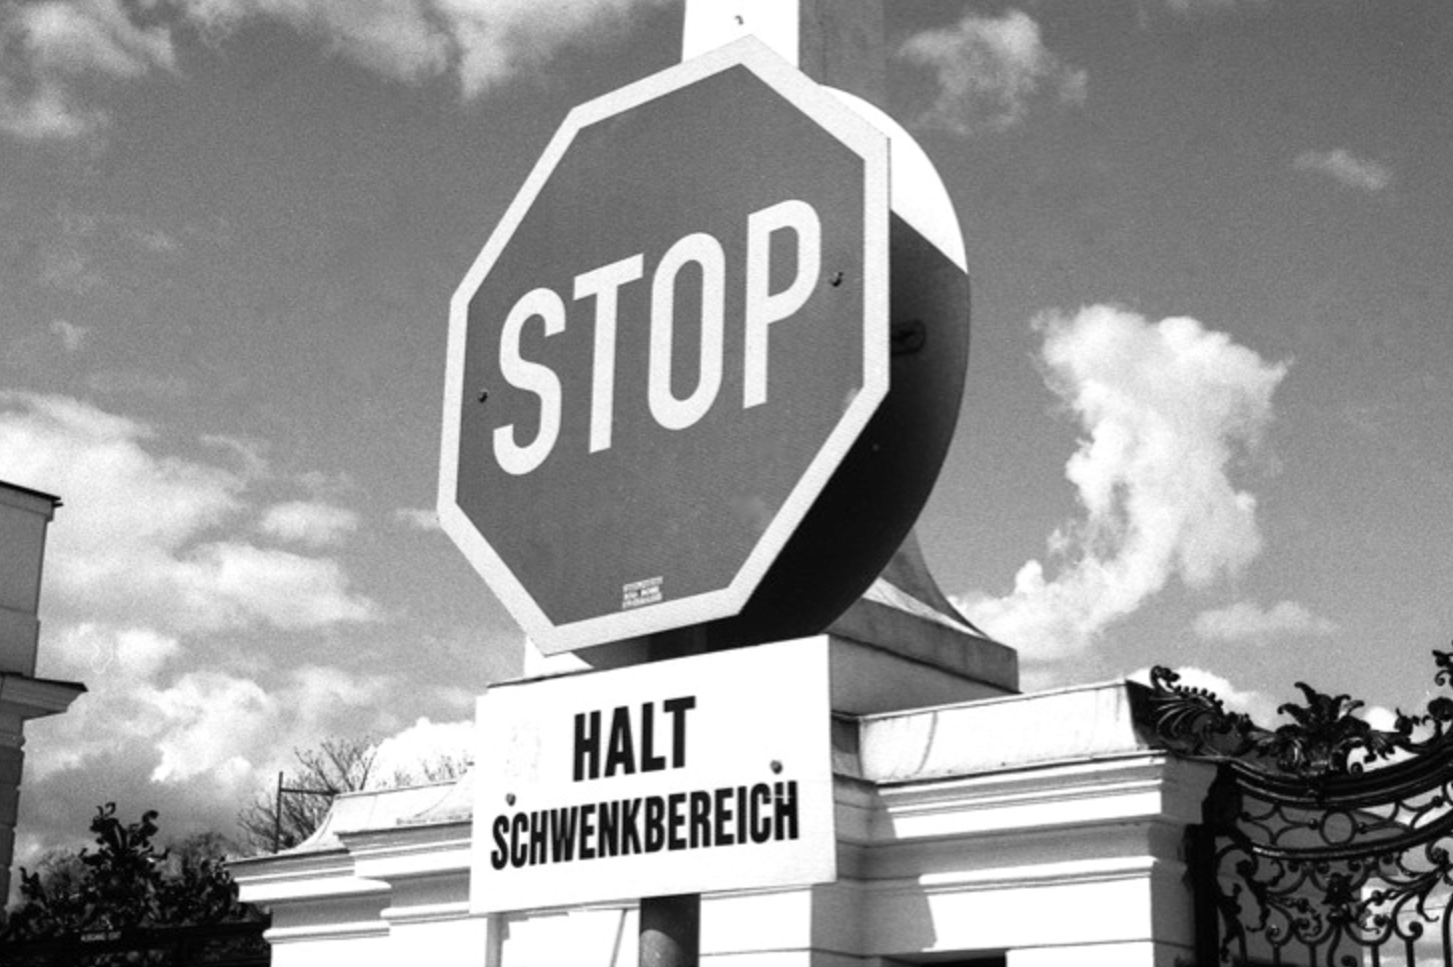 STOP -  the power of the sign, Vienna, Austria. (April 19th 2013)  // Olympus Om-2n, Neopan 400, Epson V330 // Signage is fascinating because there is almost a universal language to it. Even if we removed the words 'stop' the shape of the sign alone says 'stop.' Signs and symbols are unifying and unity is beautiful.